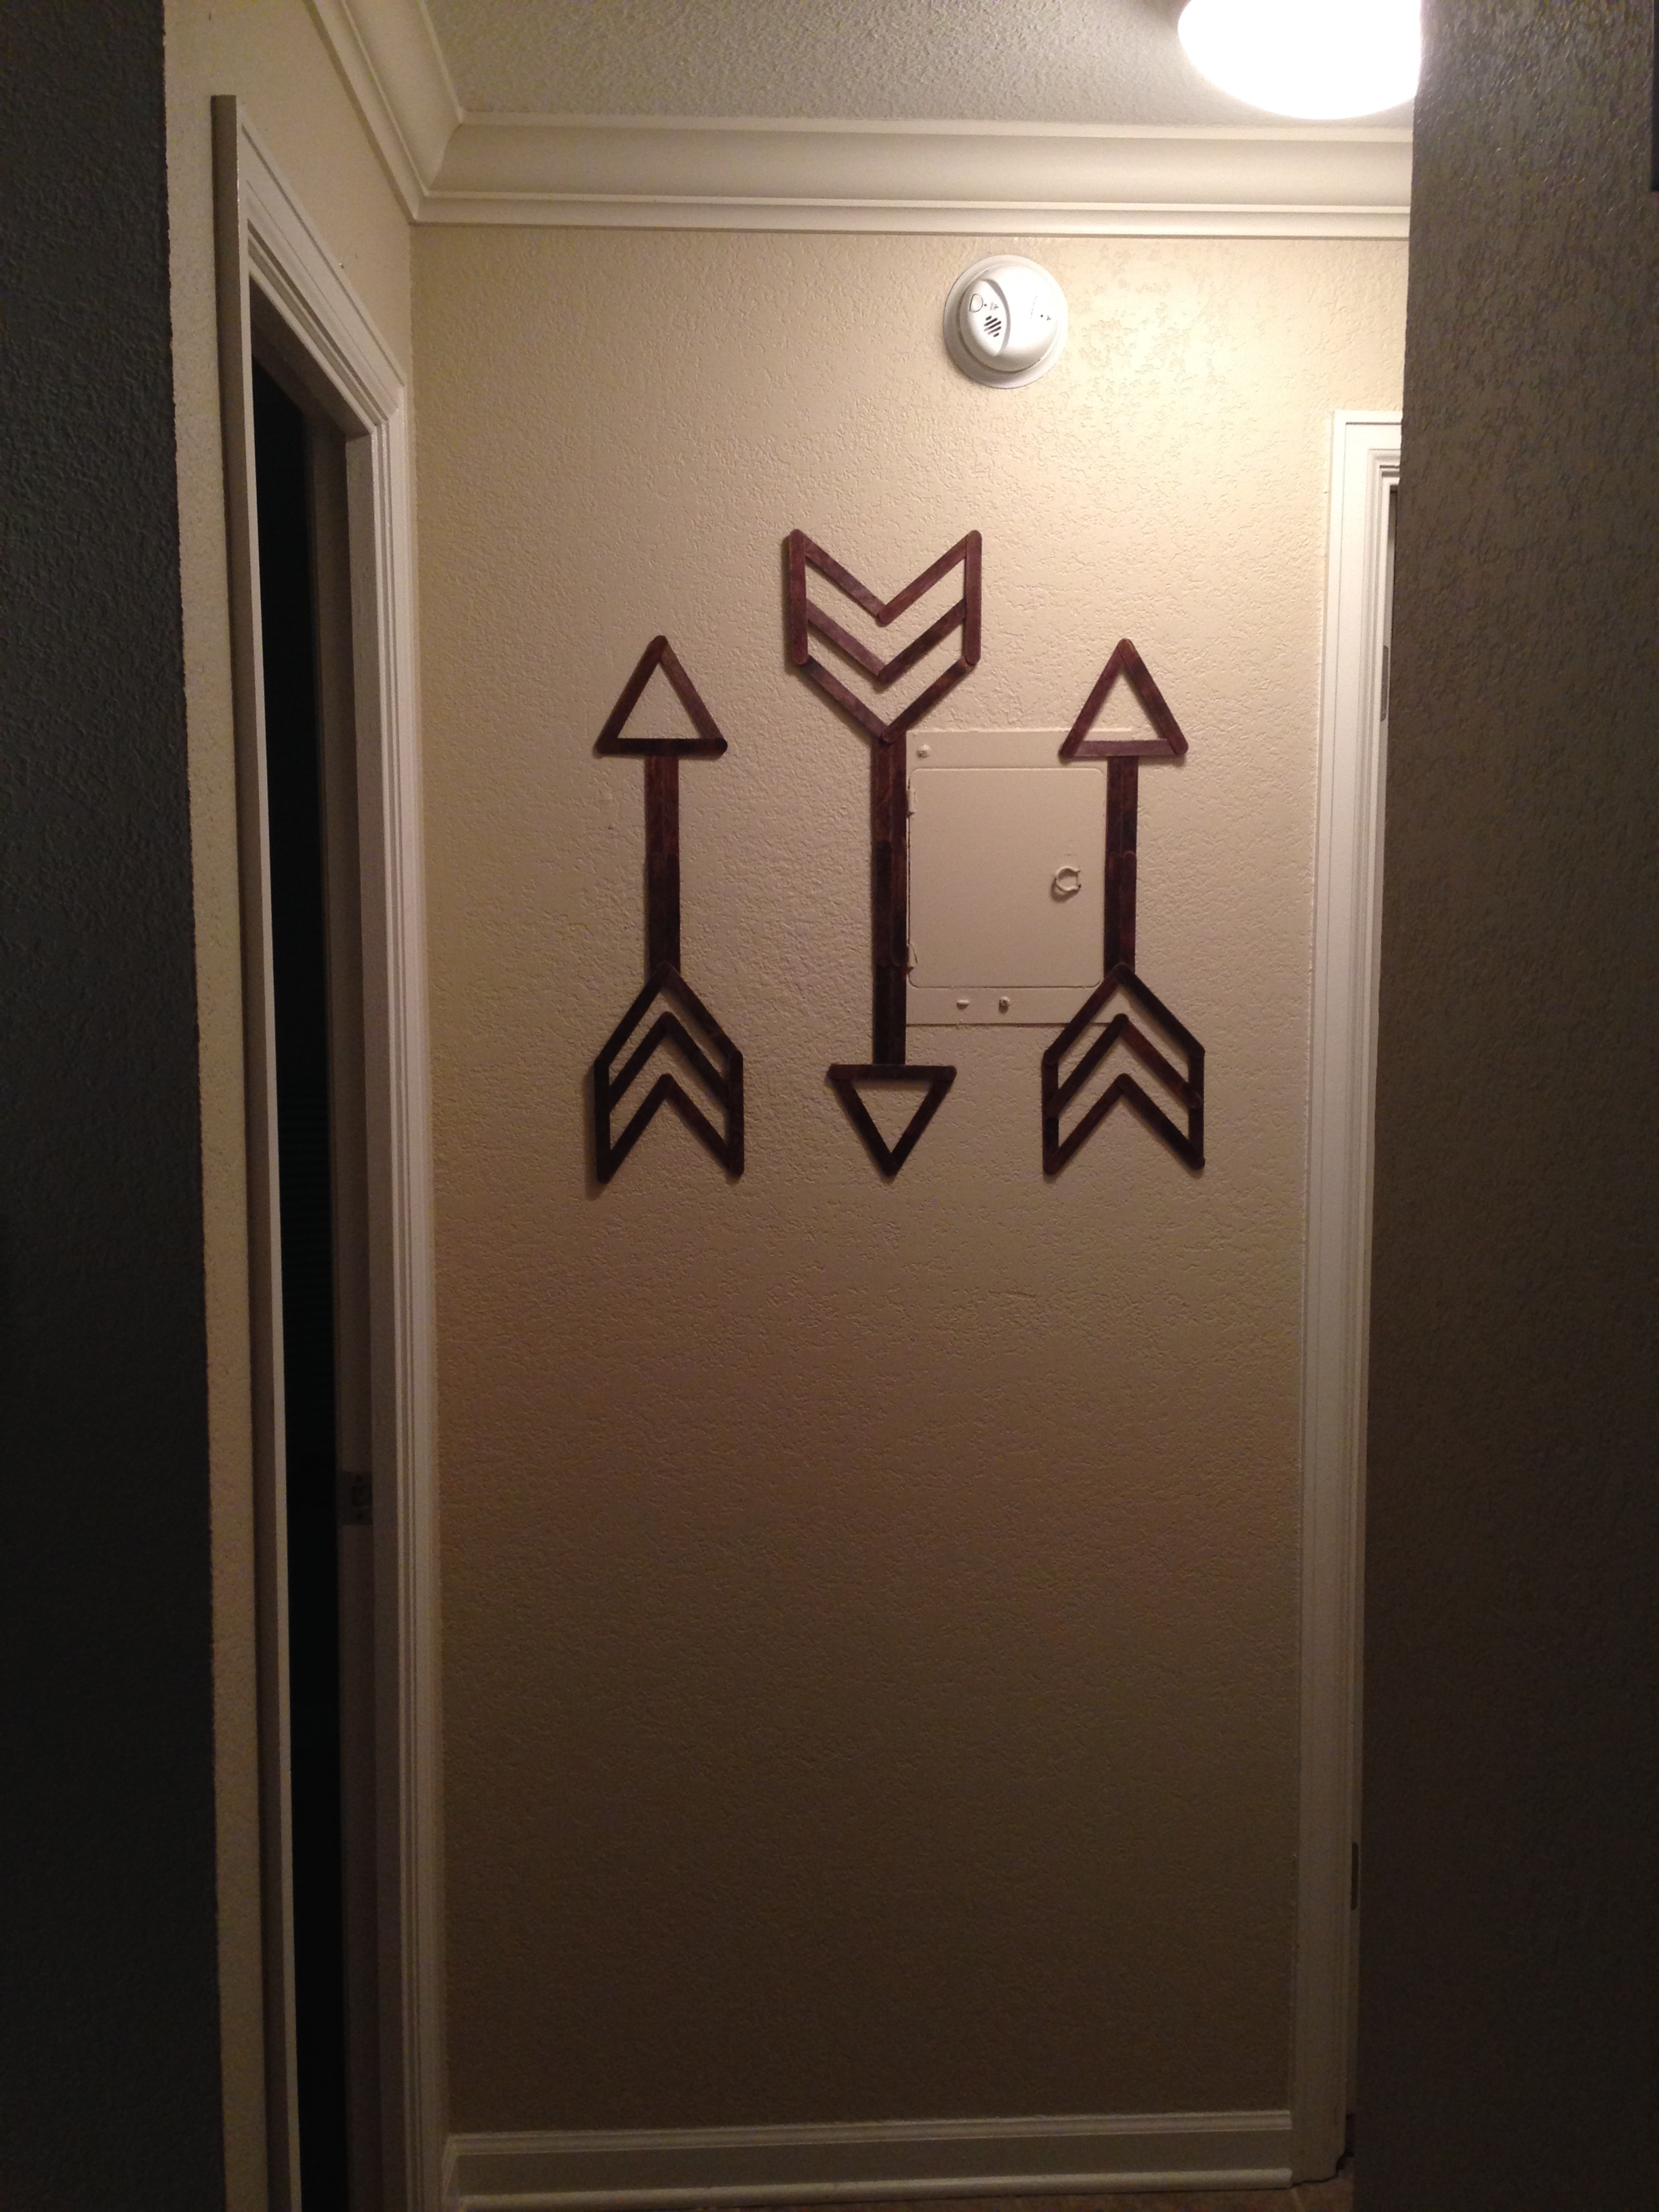 Wall Art And Decor For Living Room: Popsicle Stick Wall Art